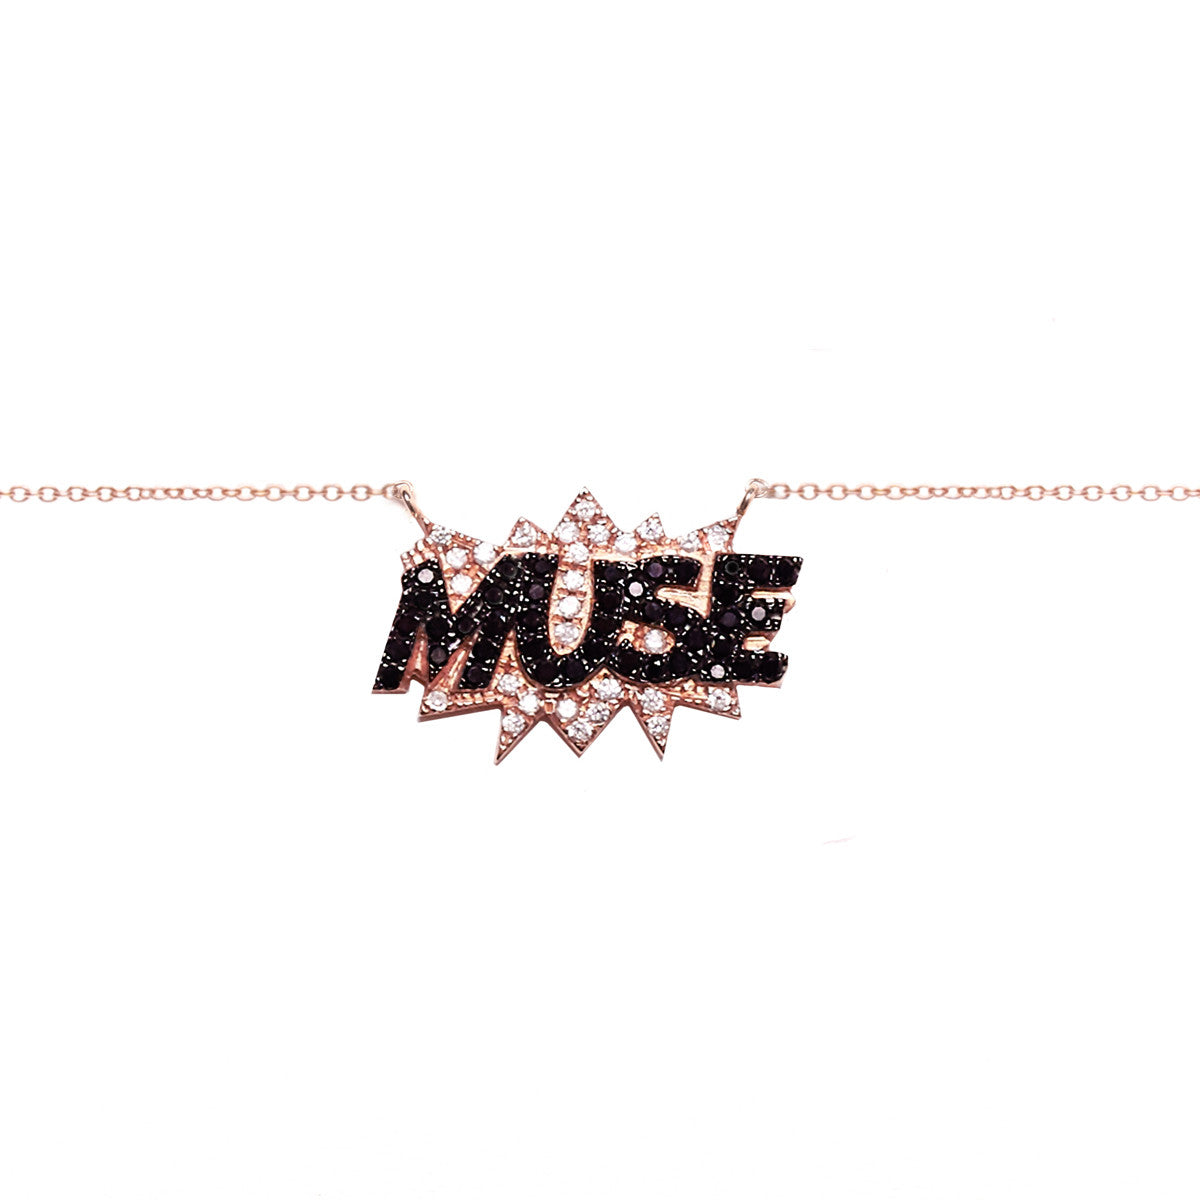 Diane Kordas Jewellery MUSE Necklace 18kt gold